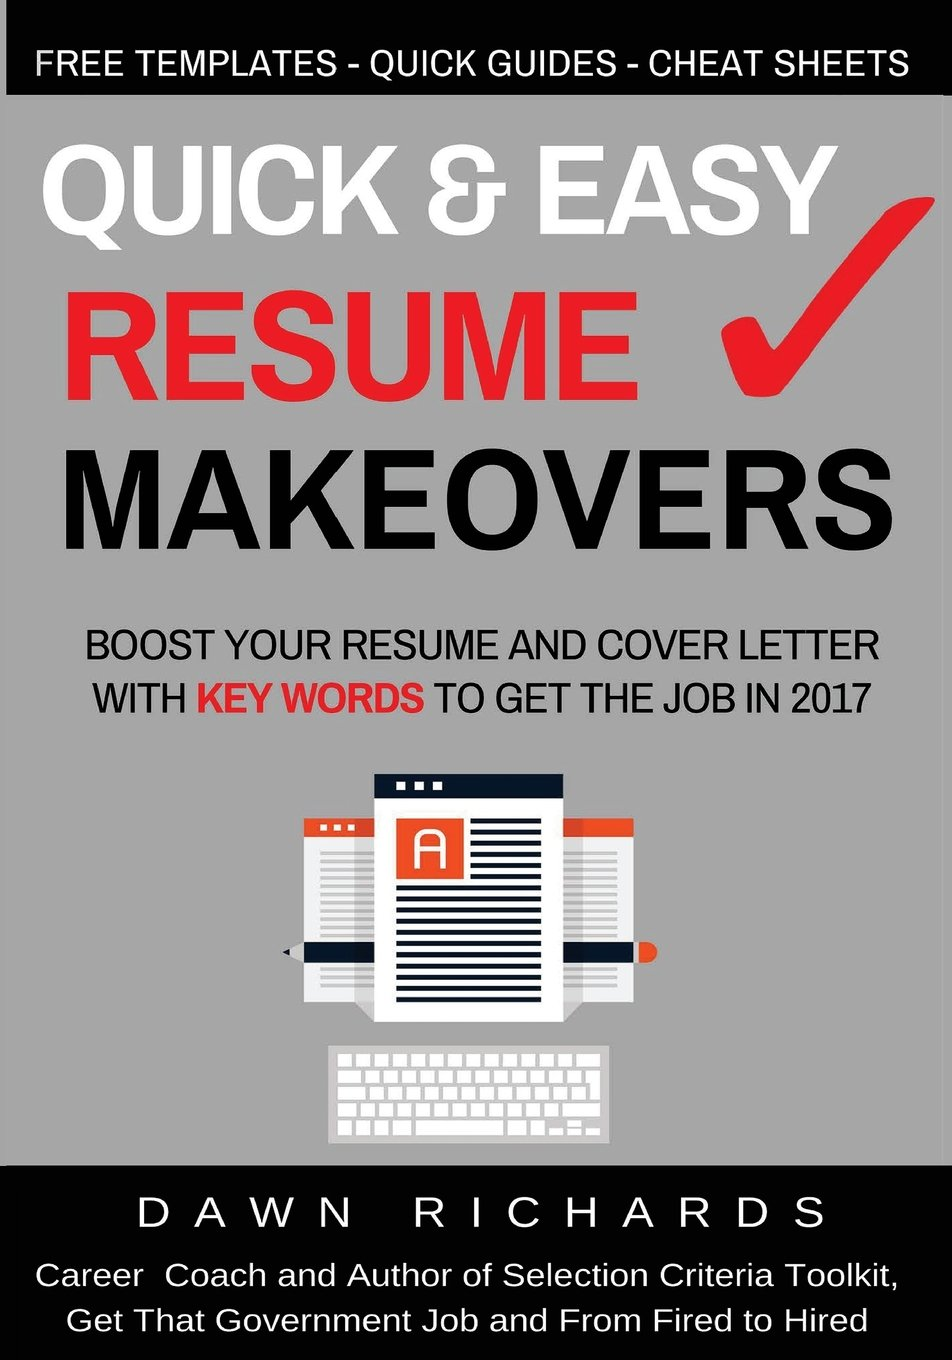 quick easy resume makeovers boost your resume and cover letter